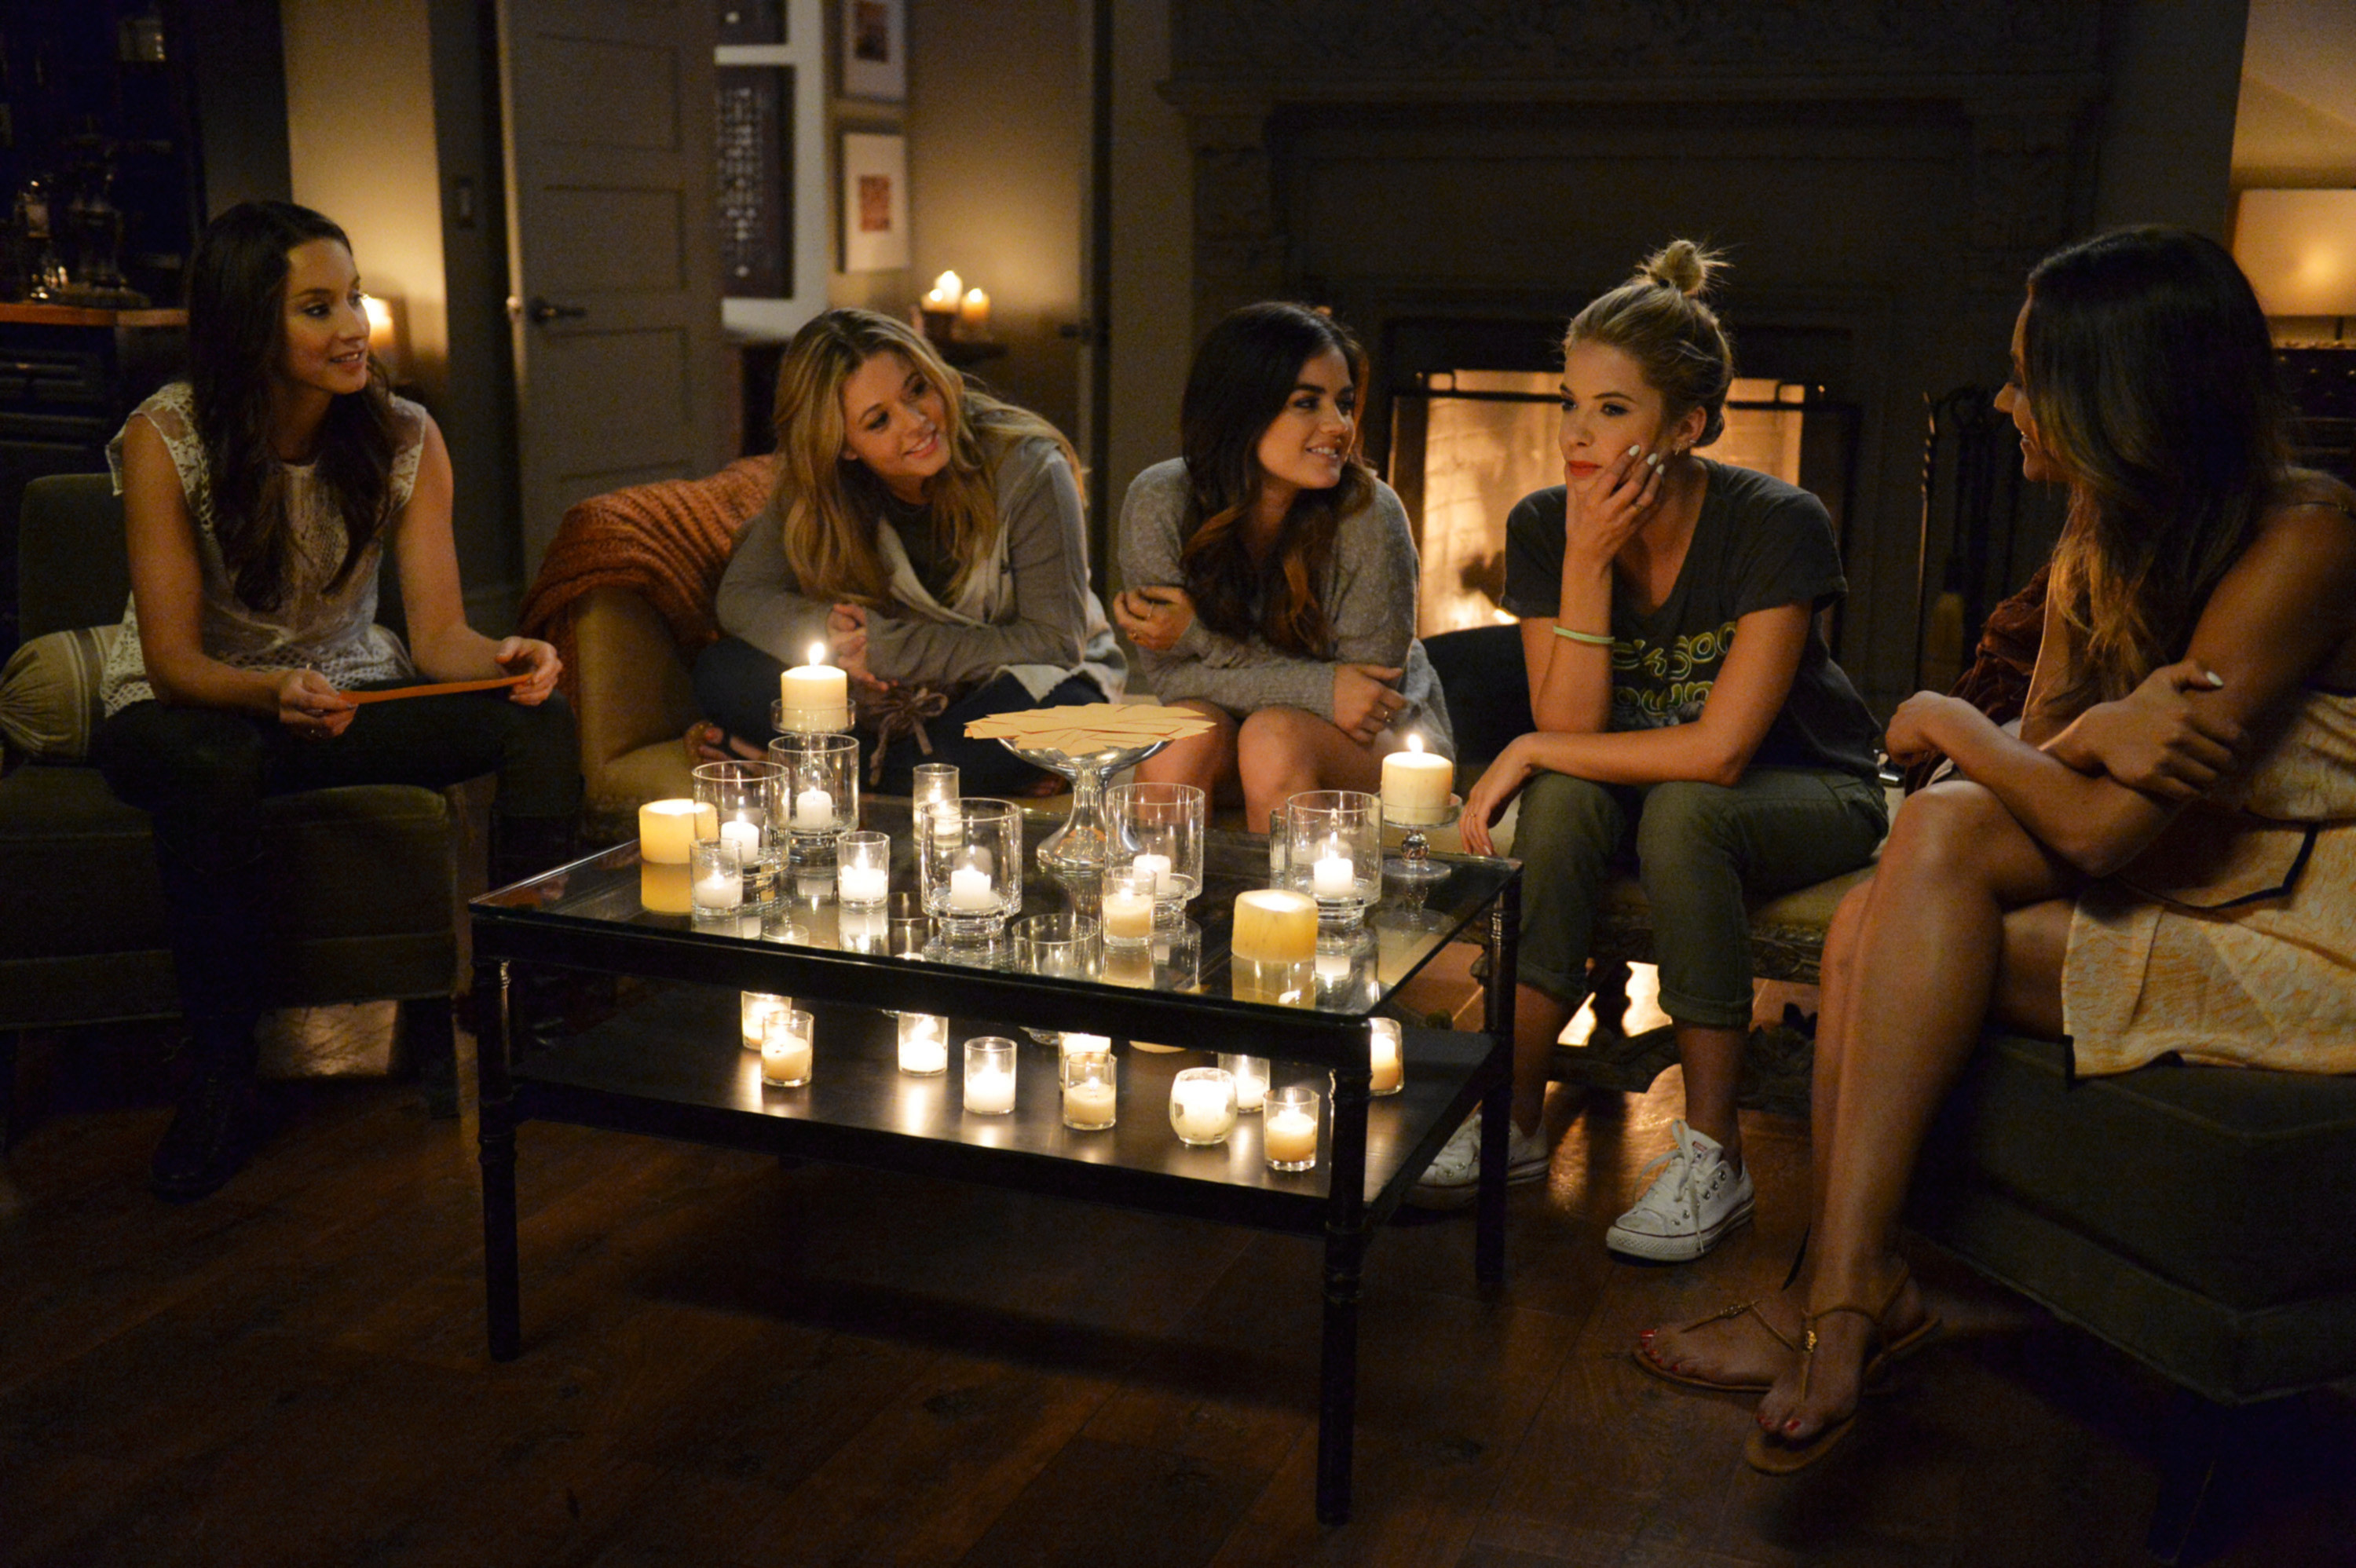 A still of Spencer Hastings, Alison DiLaurentis, Aria Montgomery, Hanna Marin, and Emily Fields in Pretty Little Liars